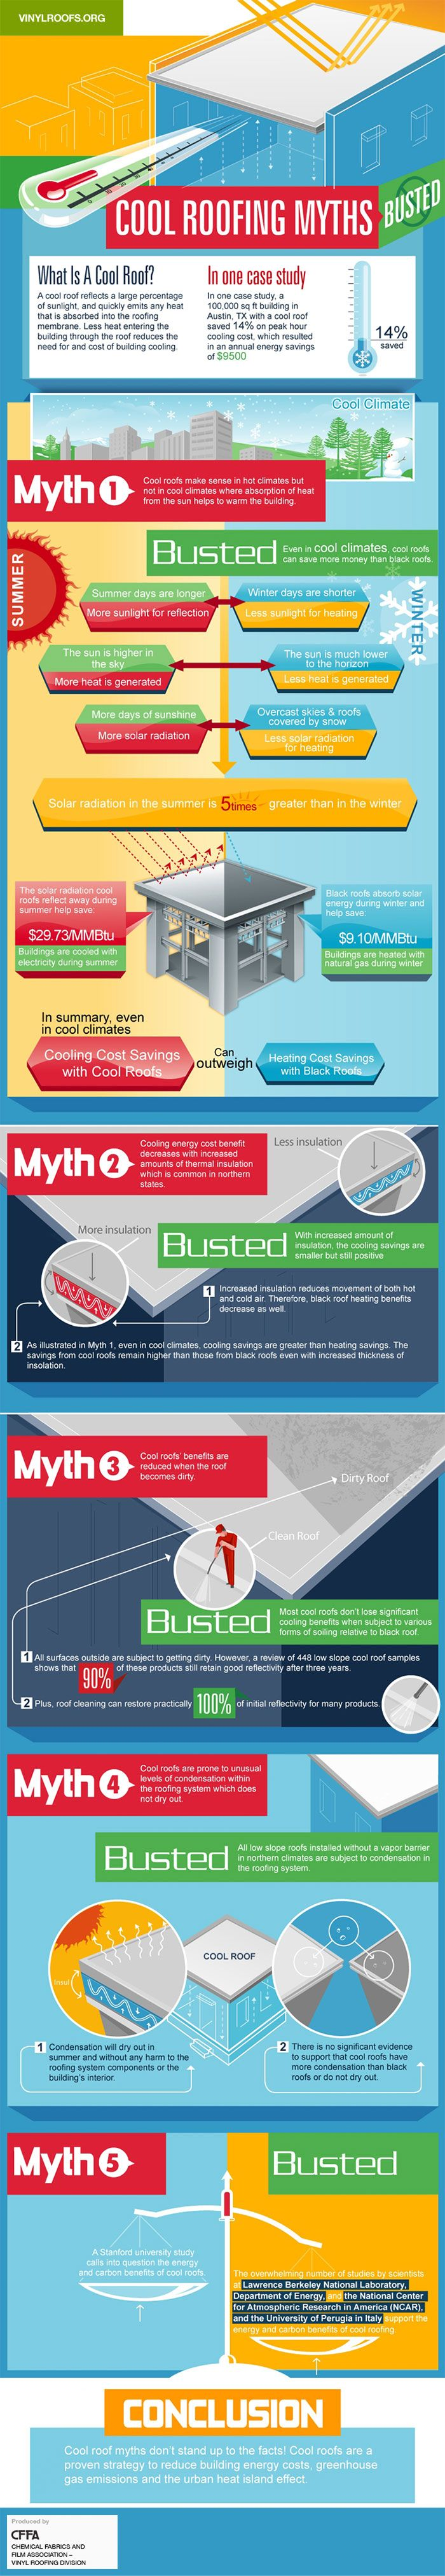 """Cool Roofing Myths, Facts & Information 